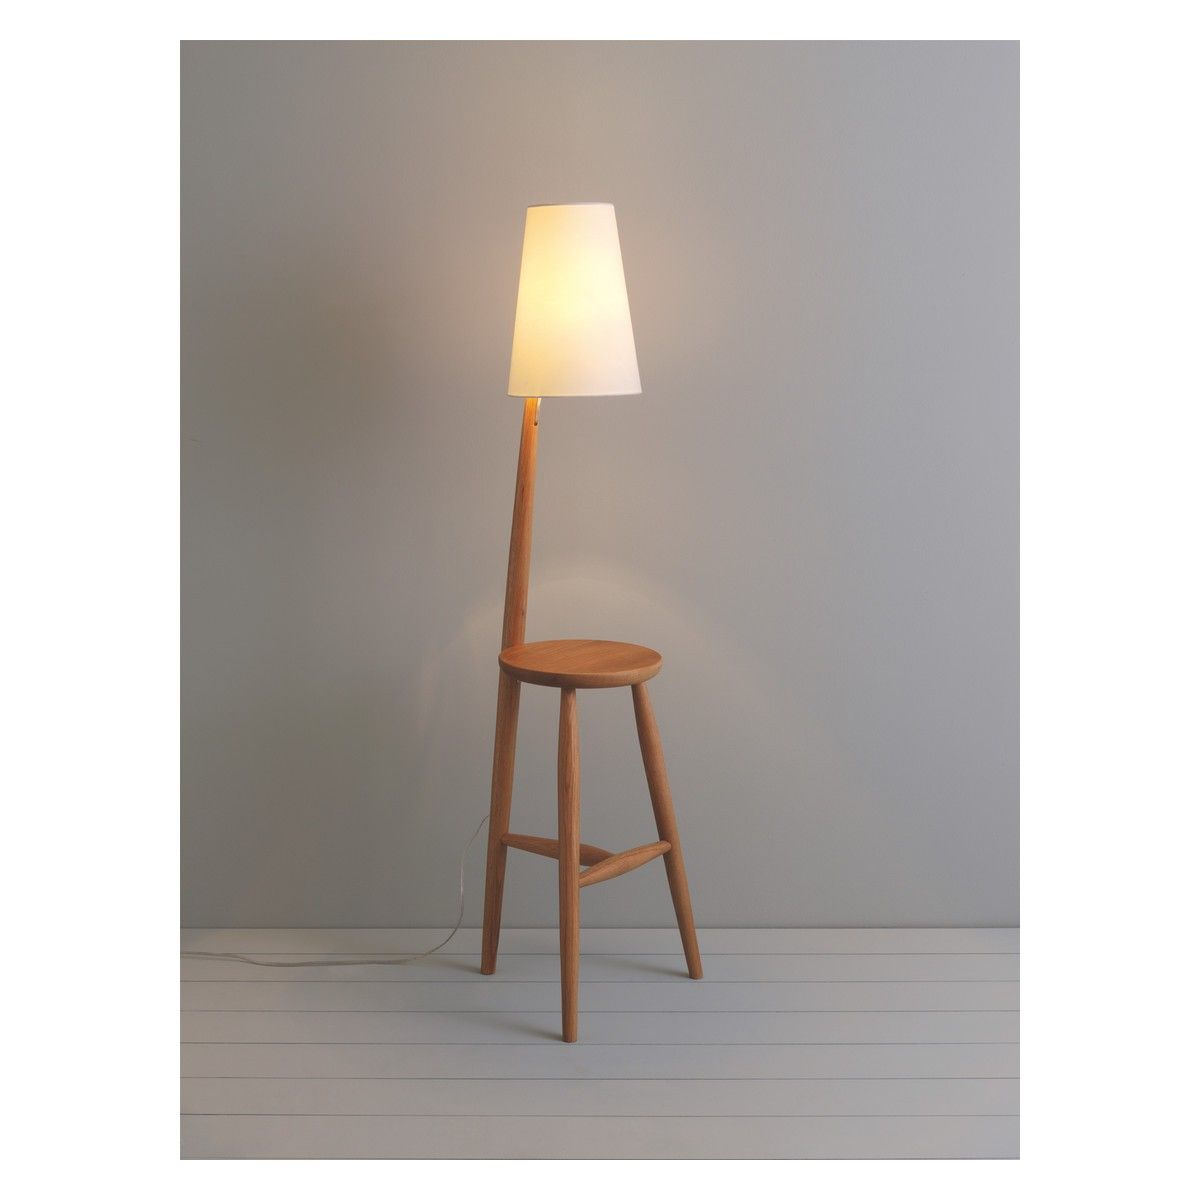 Wallace oak floor lamp and table with white shade floor lamp wallace oak floor lamp and table with white shade geotapseo Gallery